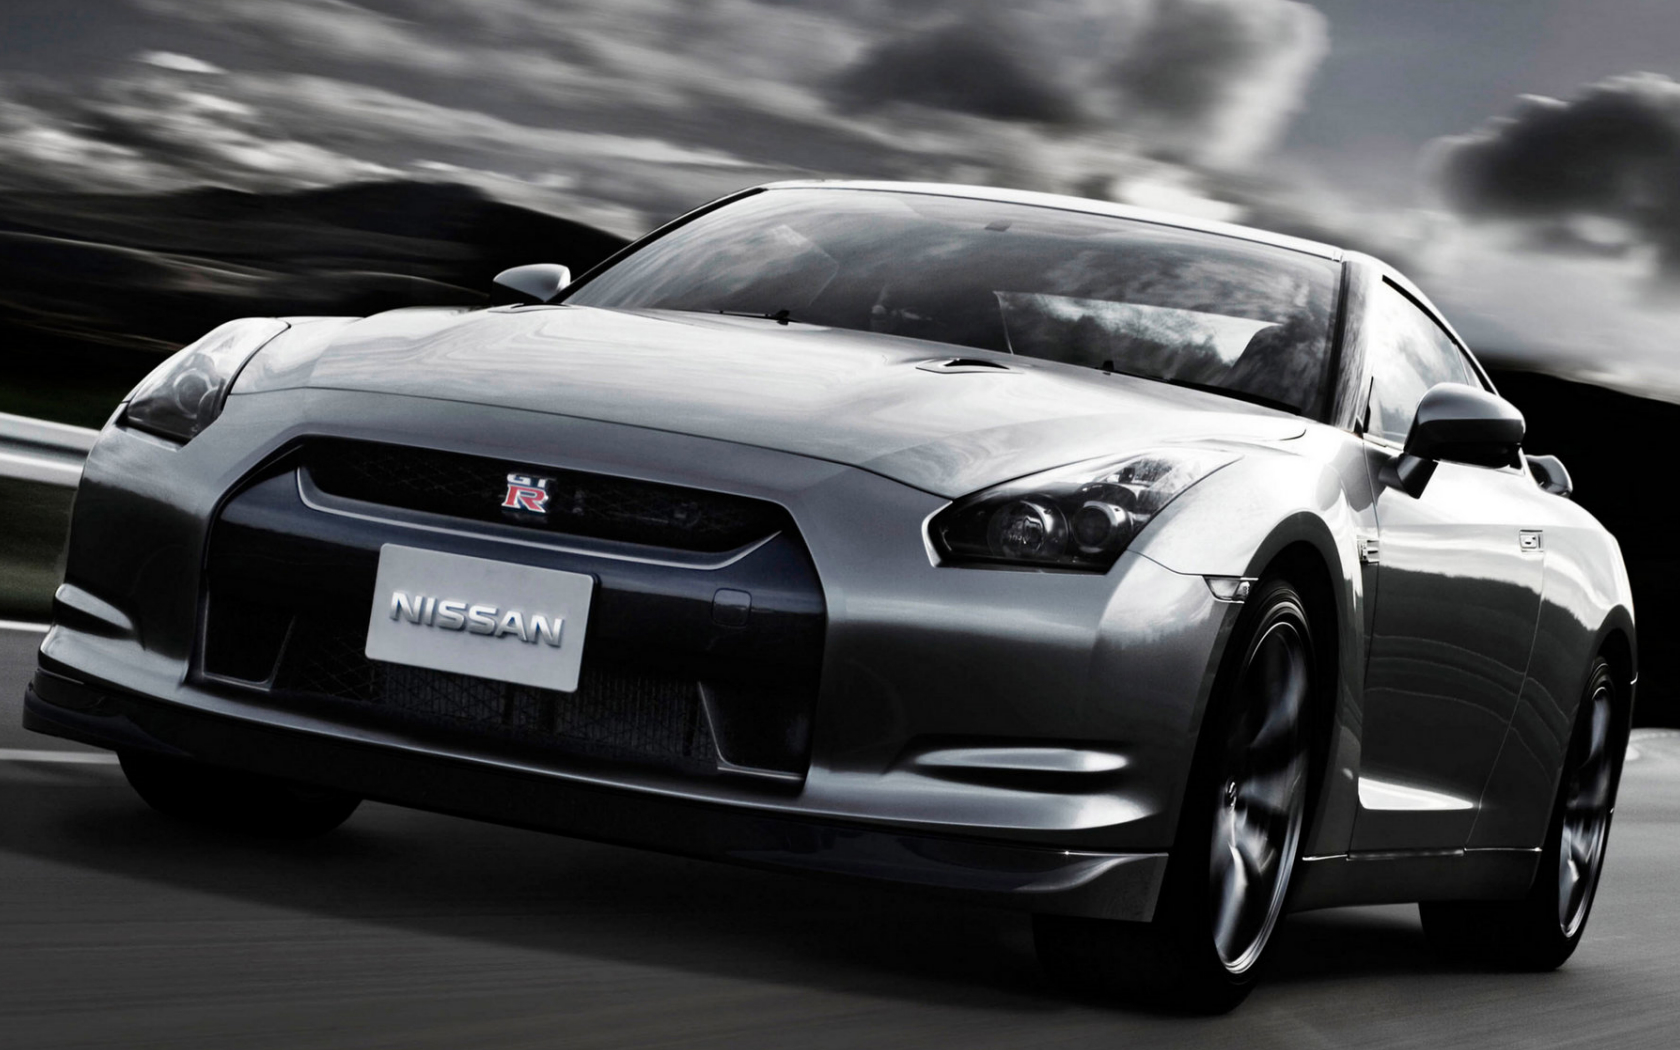 cars grayscale Nissan skyline HD Wallpaper